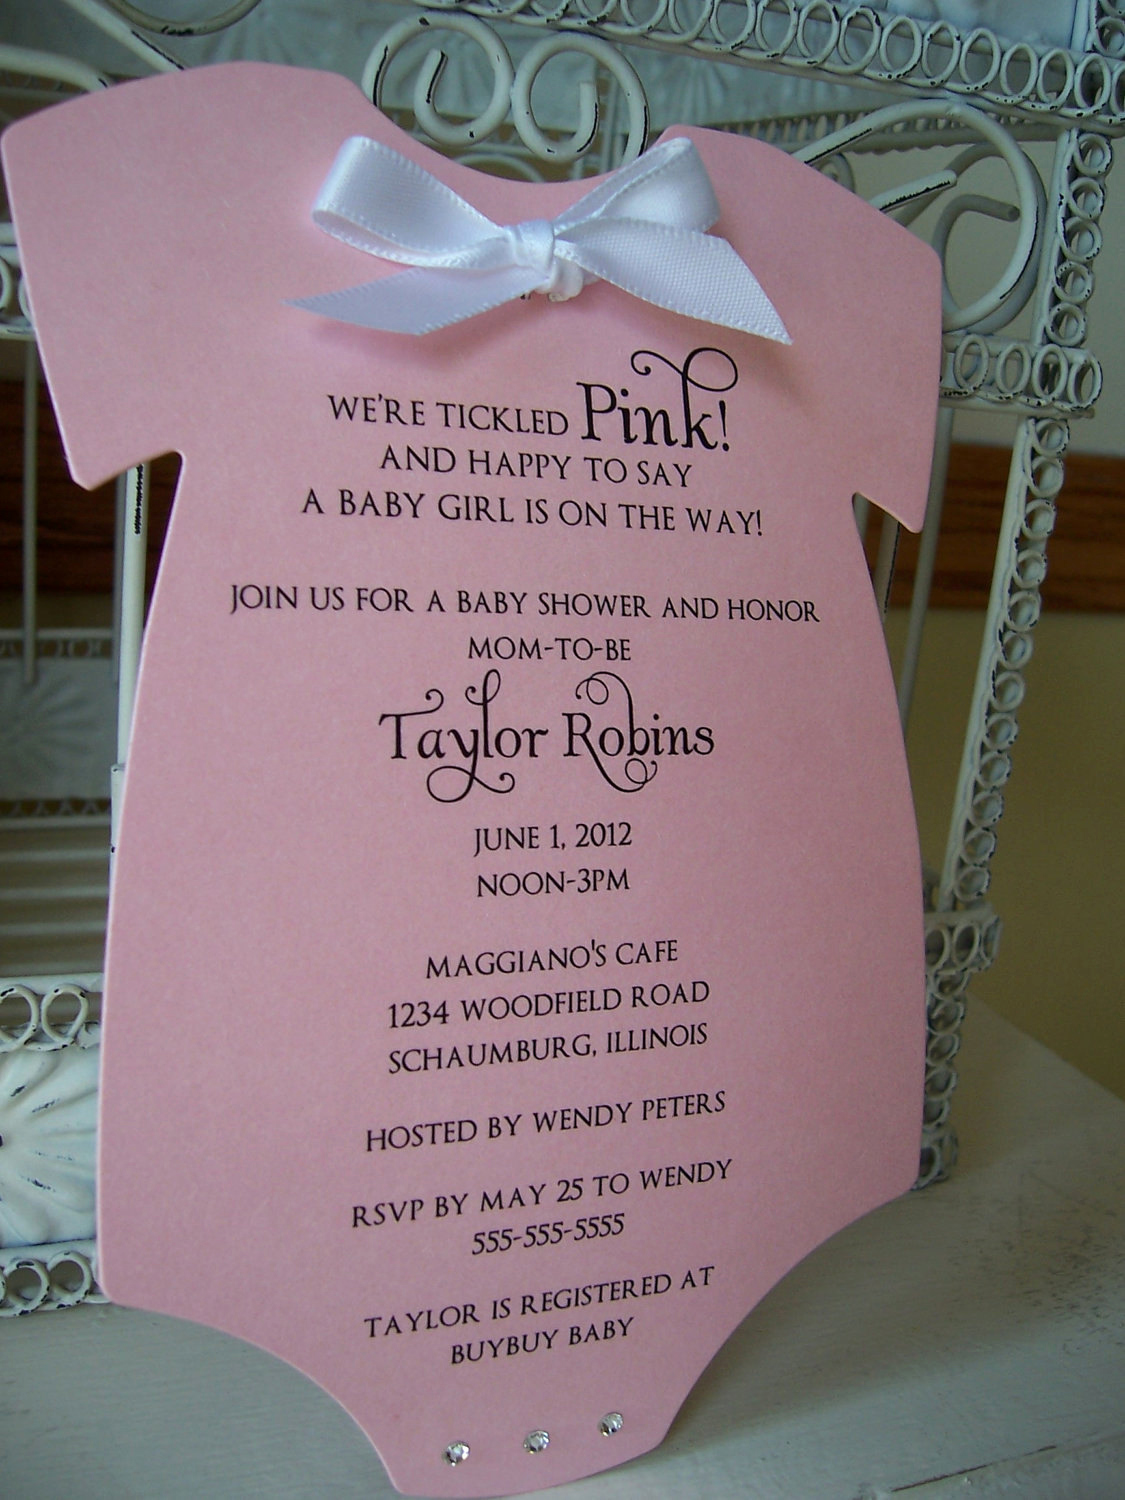 Cute Baby Shower Invitation Wording Fresh Think Pink Baby Shower Invitation Custom order for Shiloh